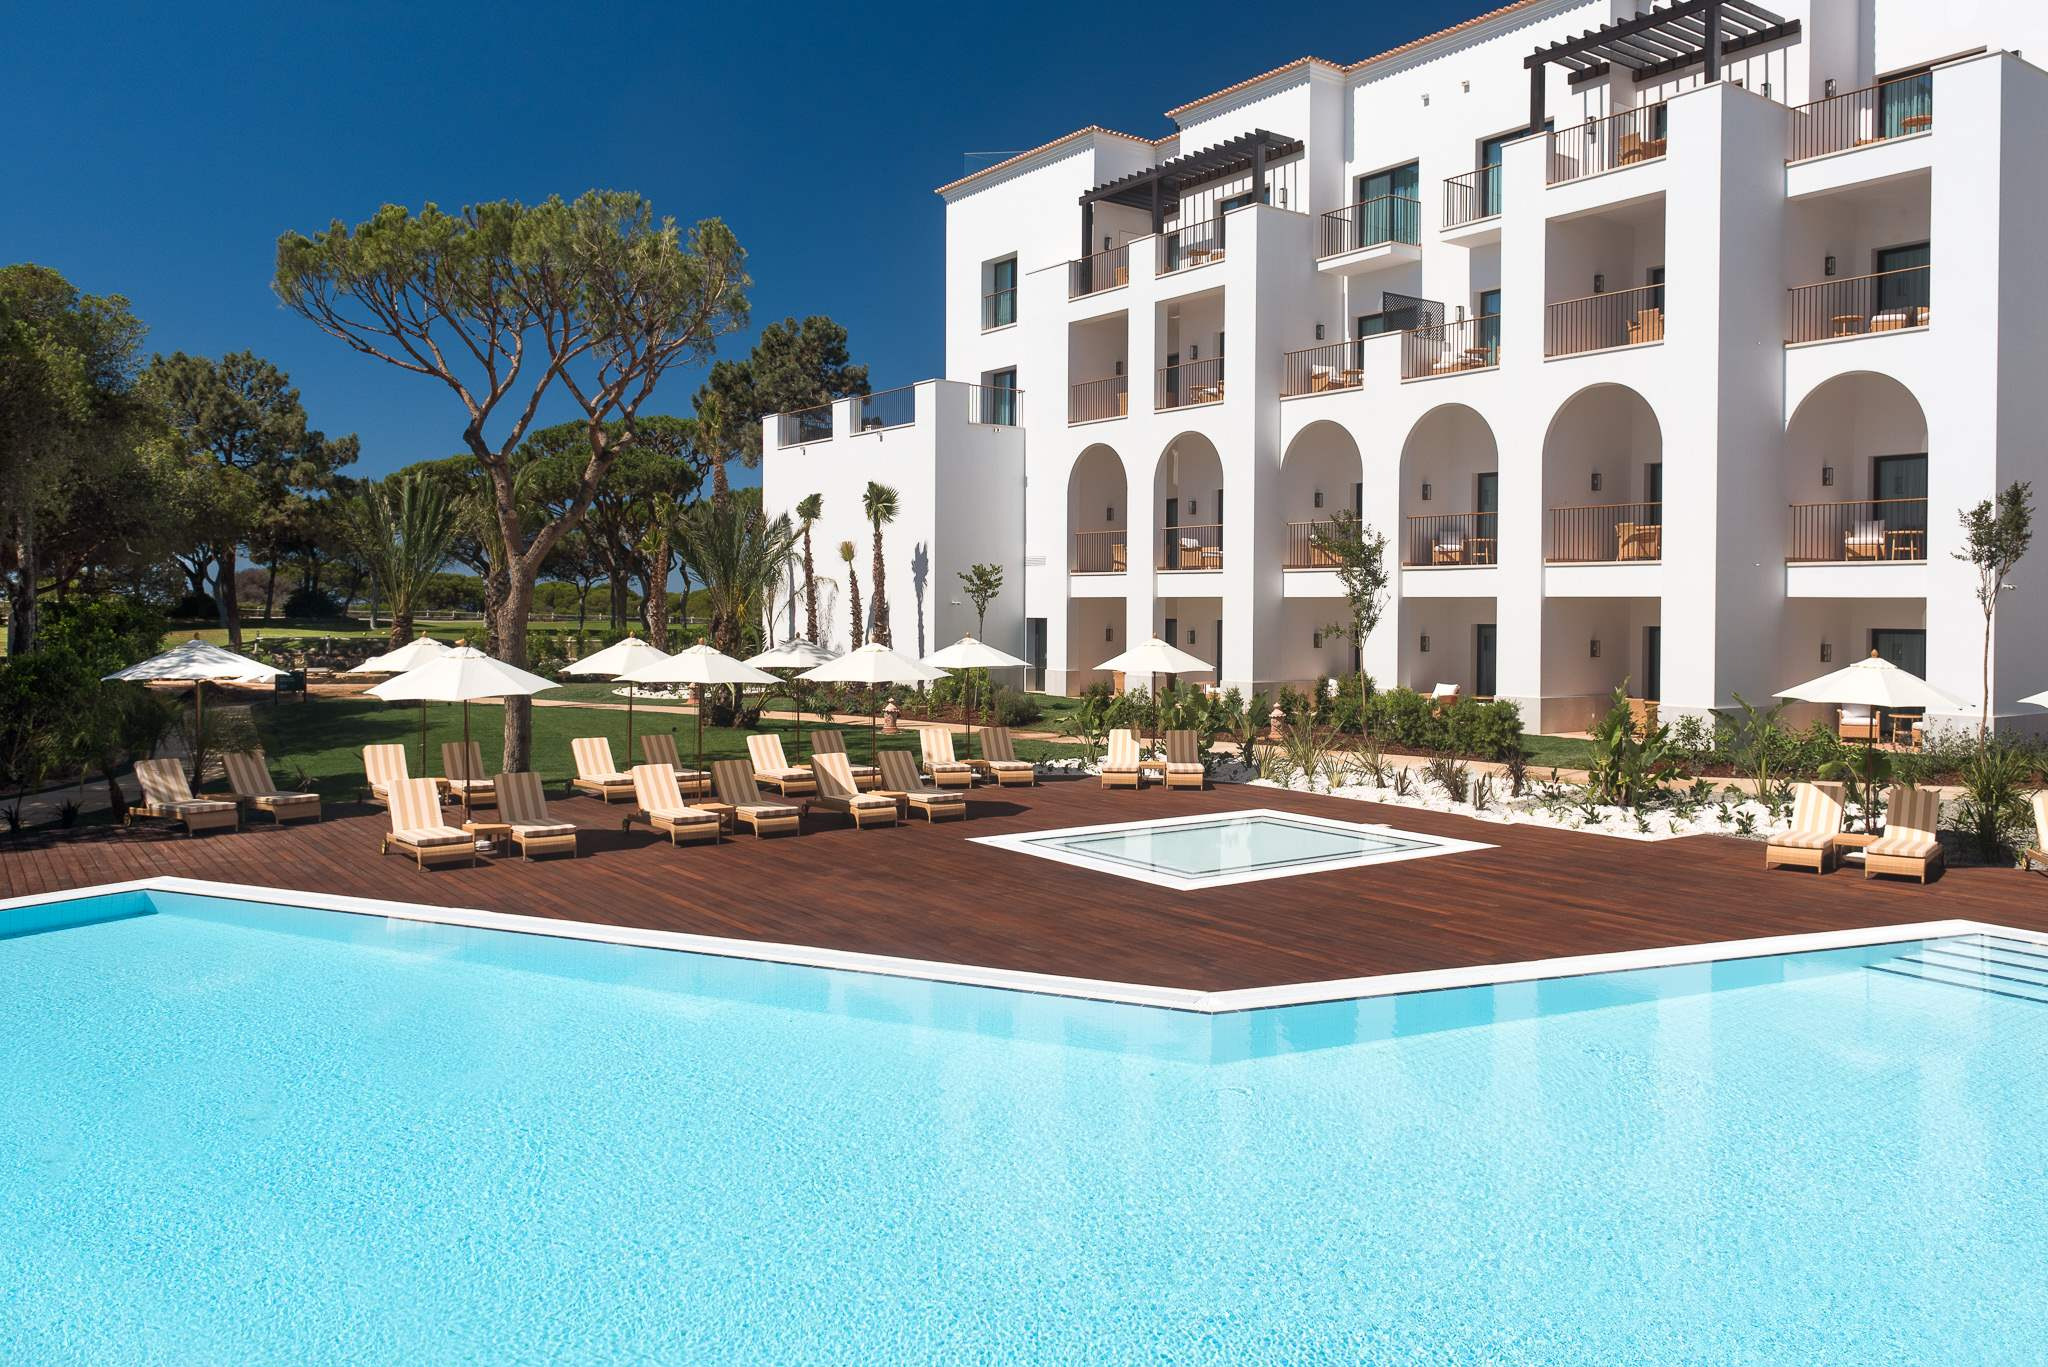 Pine Cliffs Ocean Suites, Two Bedroom Apt, Garden Access, 2 bedroom apartment in Pine Cliffs Resort, Algarve Photo #1